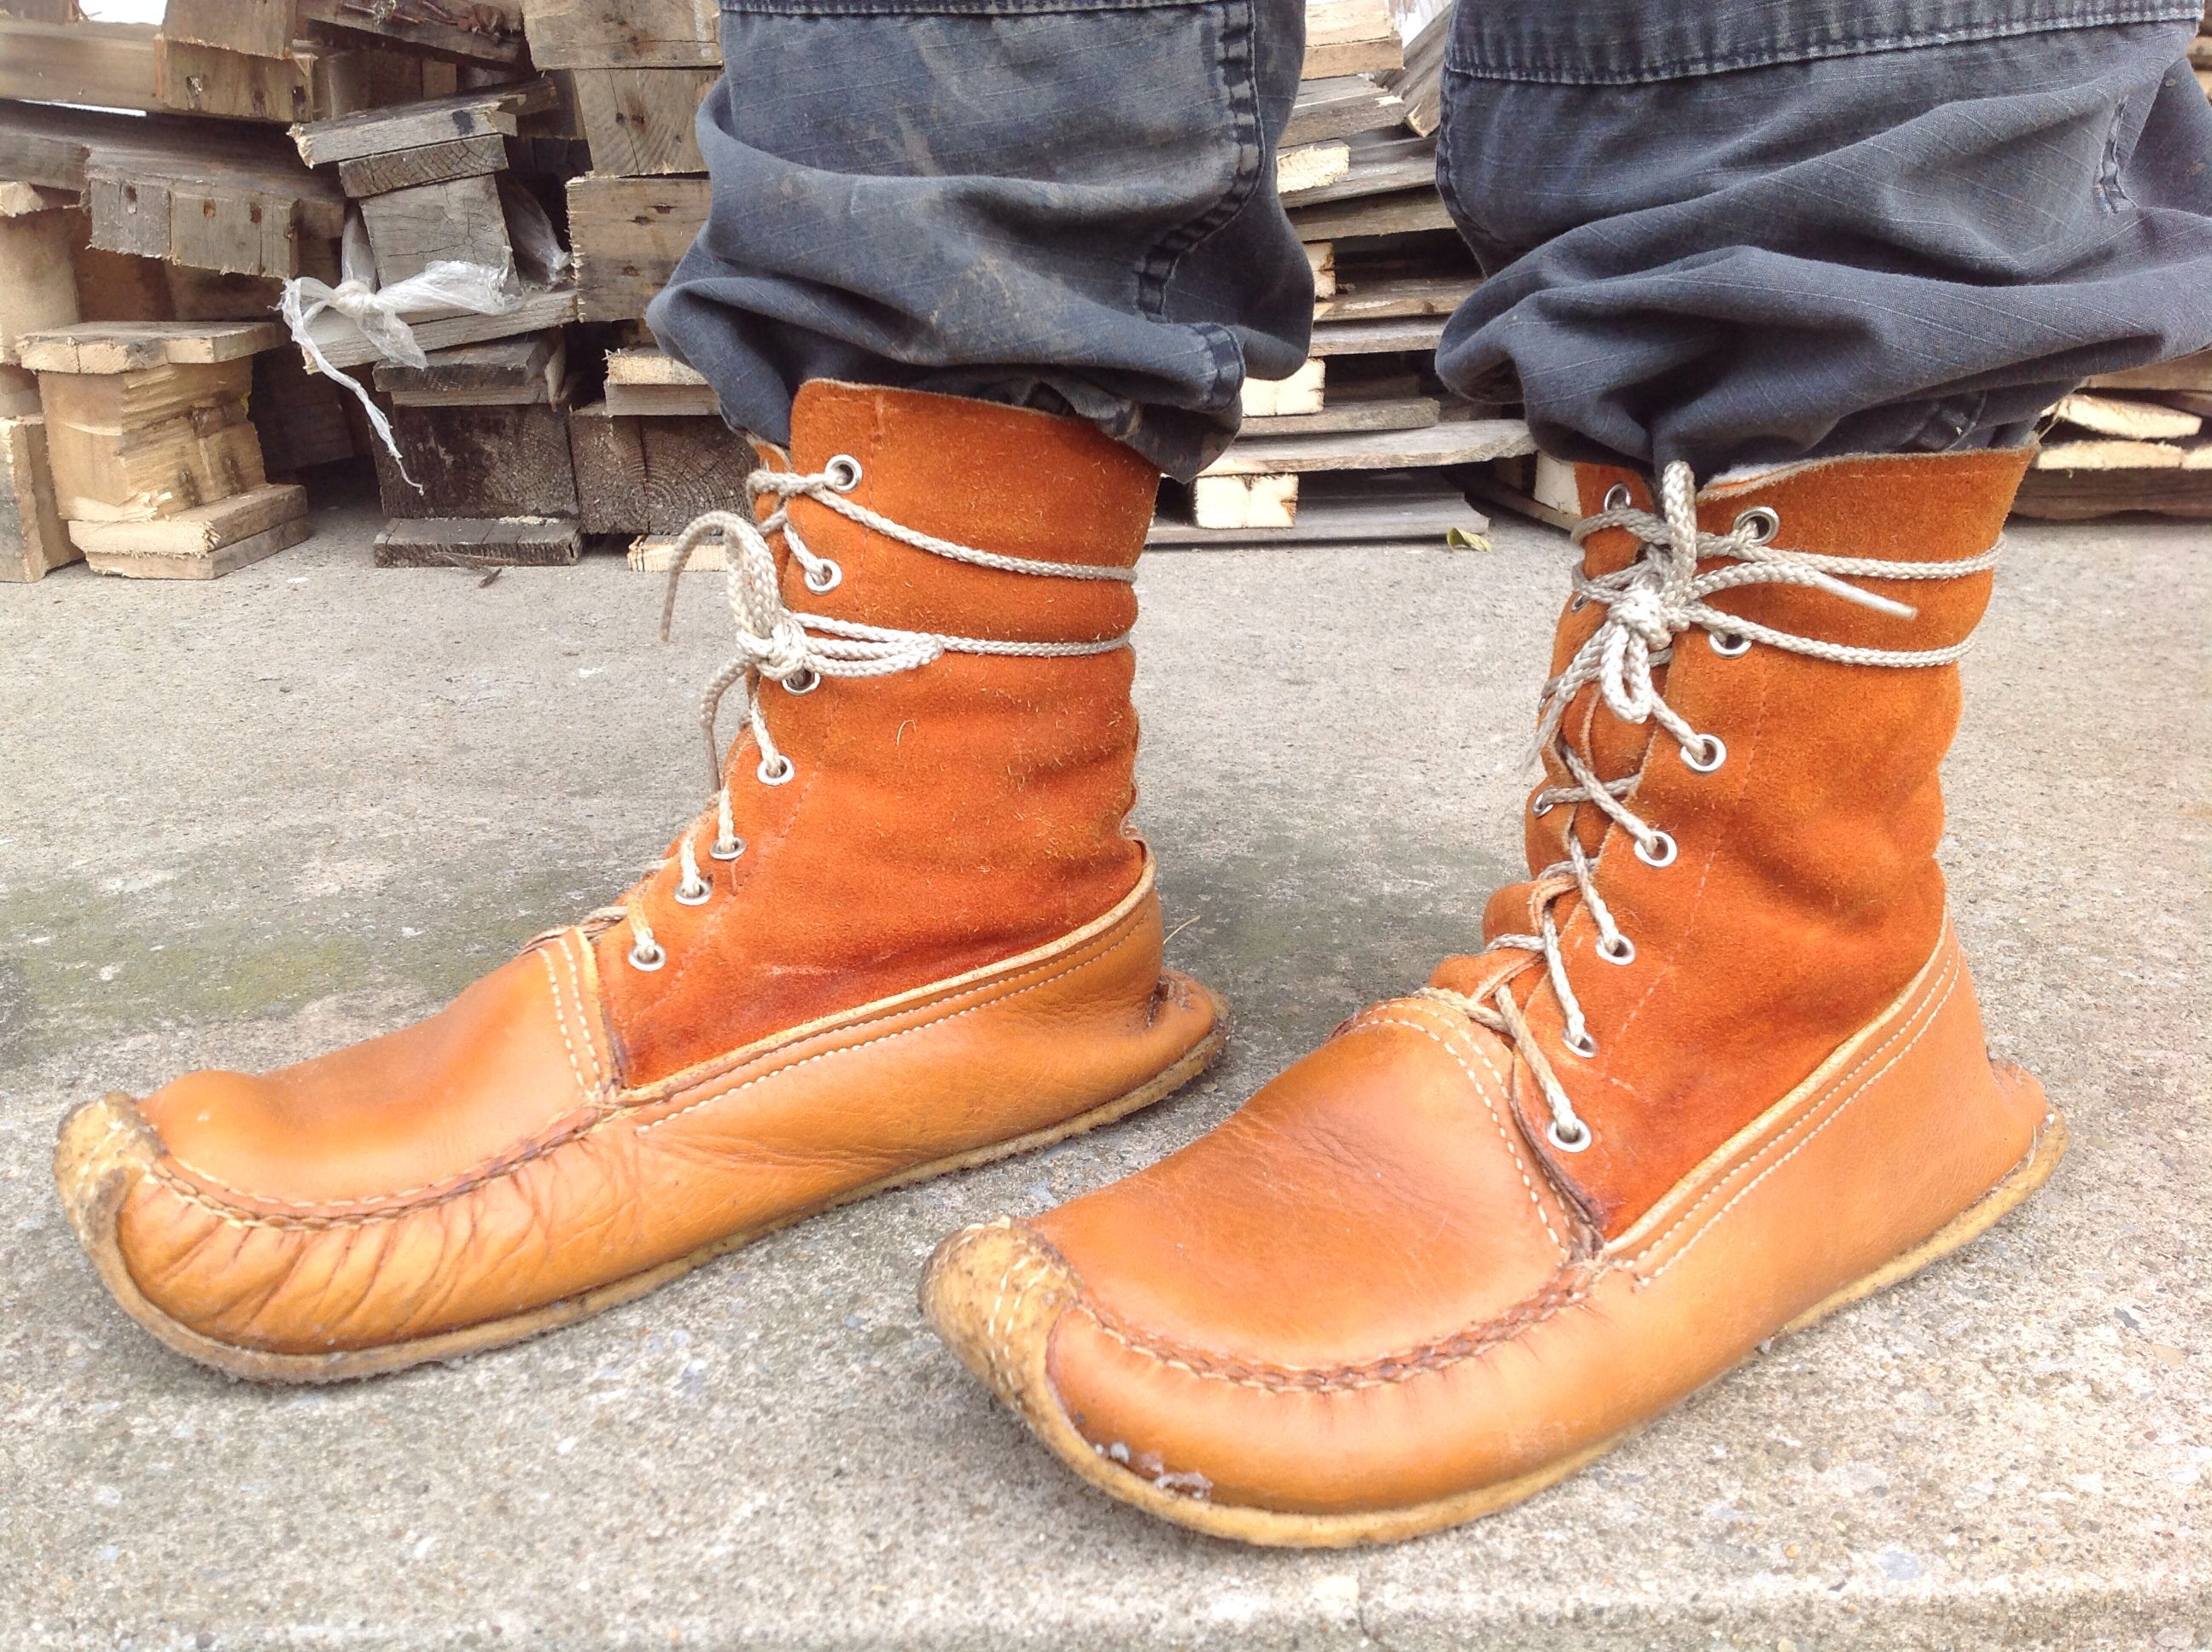 Ultimate Bushcraft boots. Made in